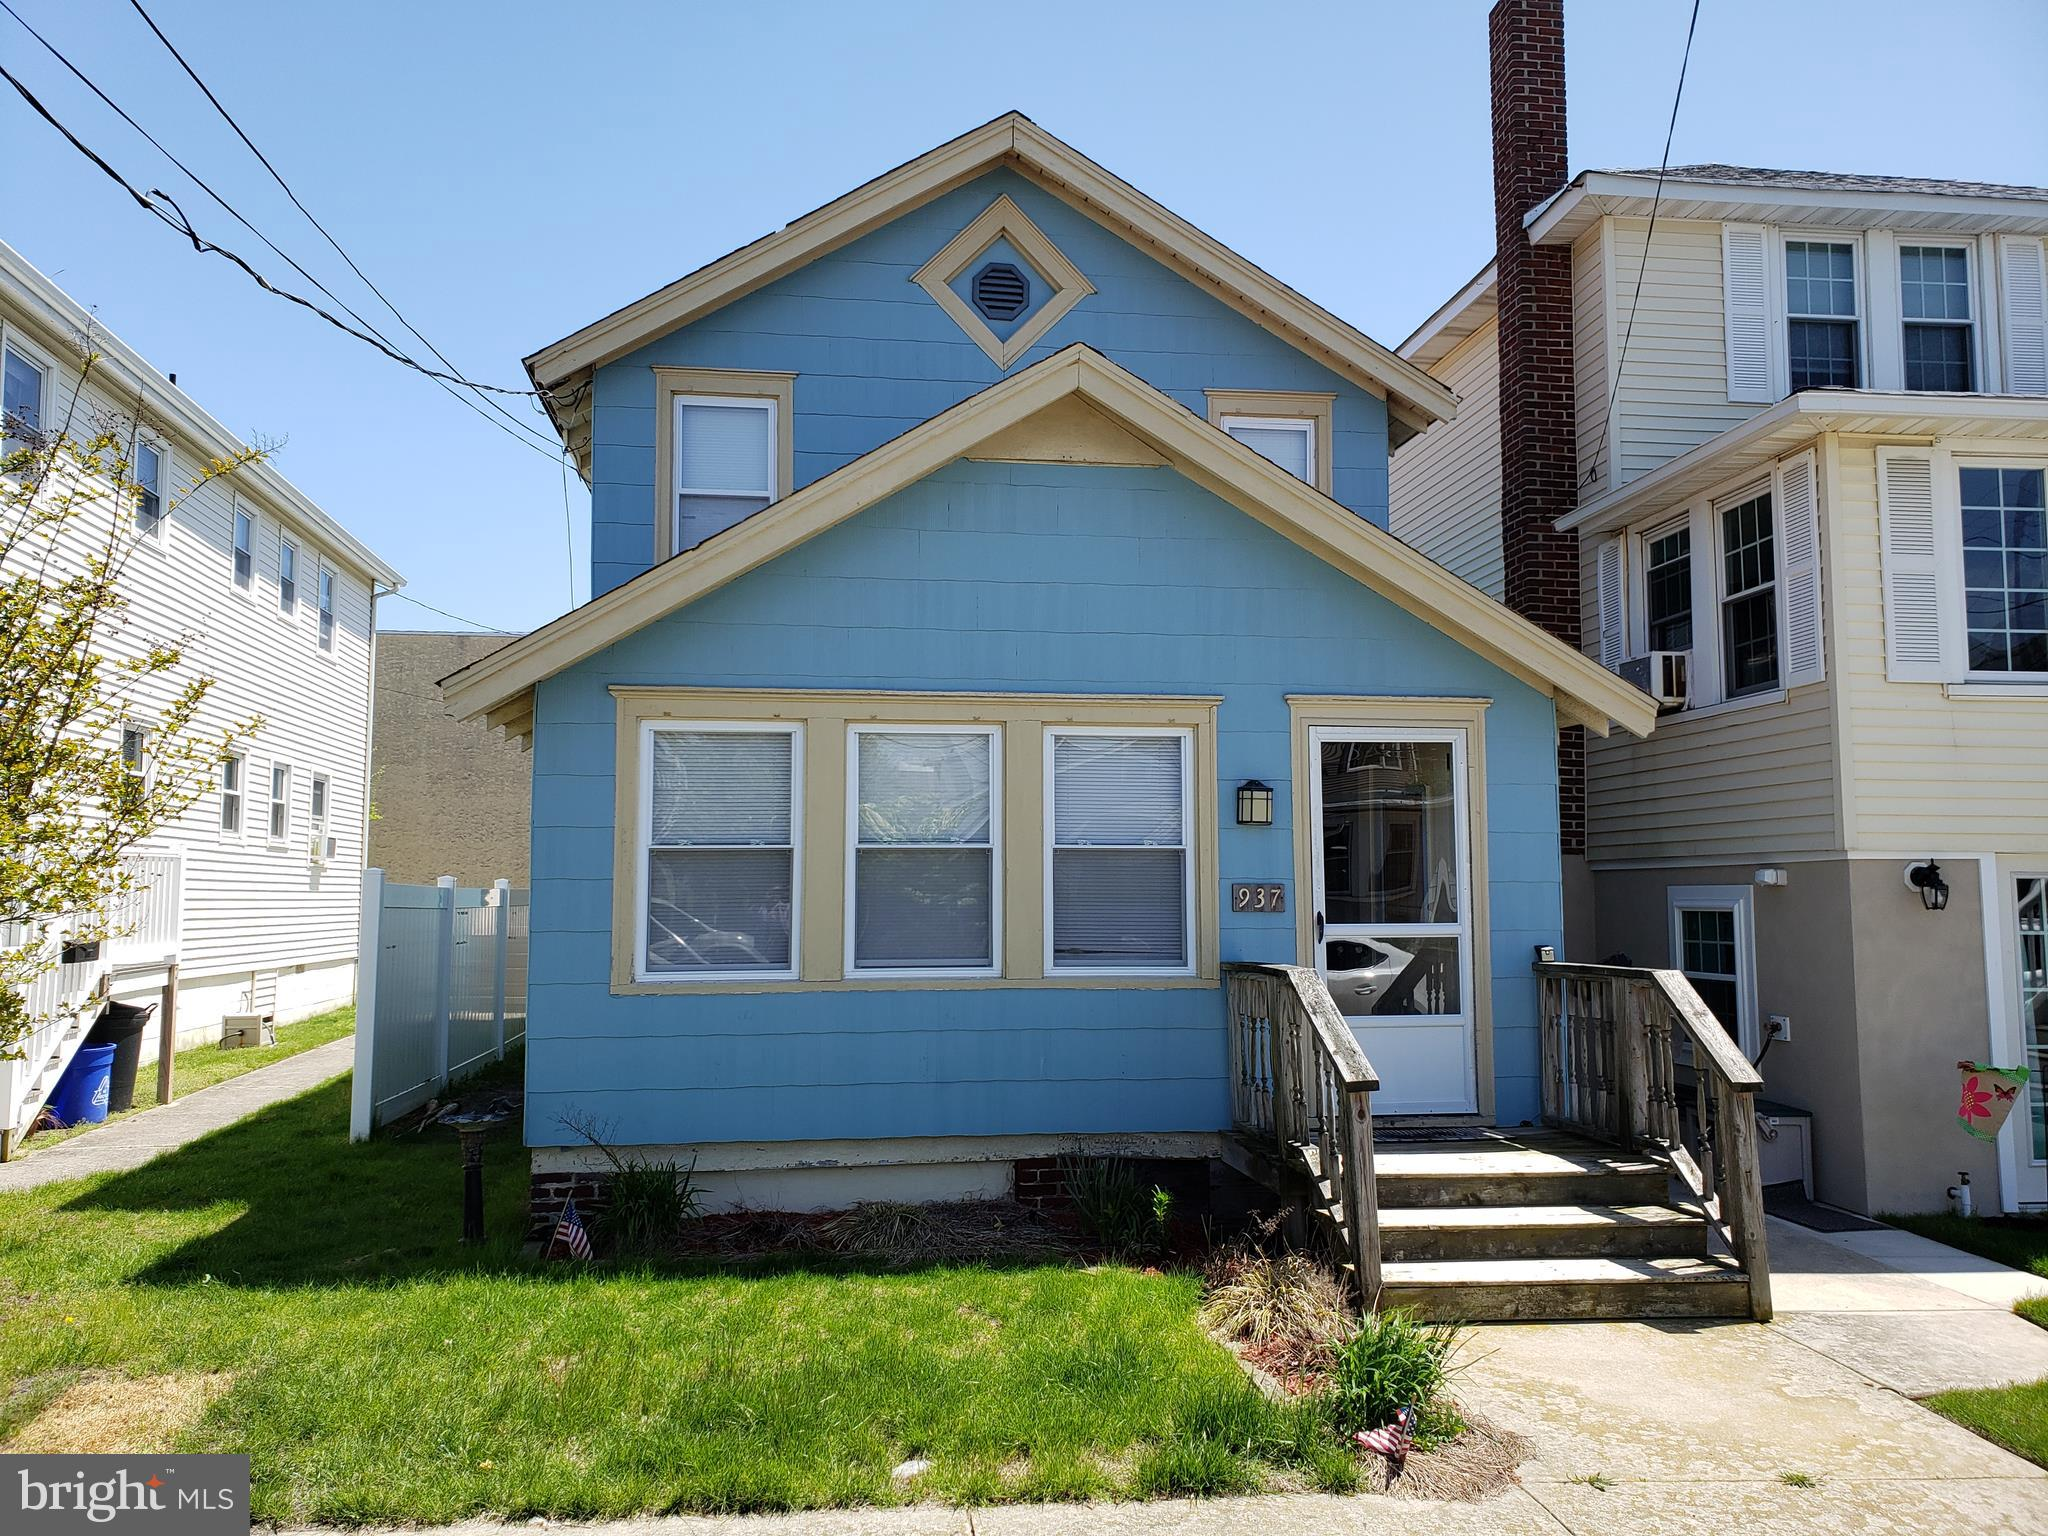 937 PLEASURE AVENUE, OCEAN CITY, NJ 08226